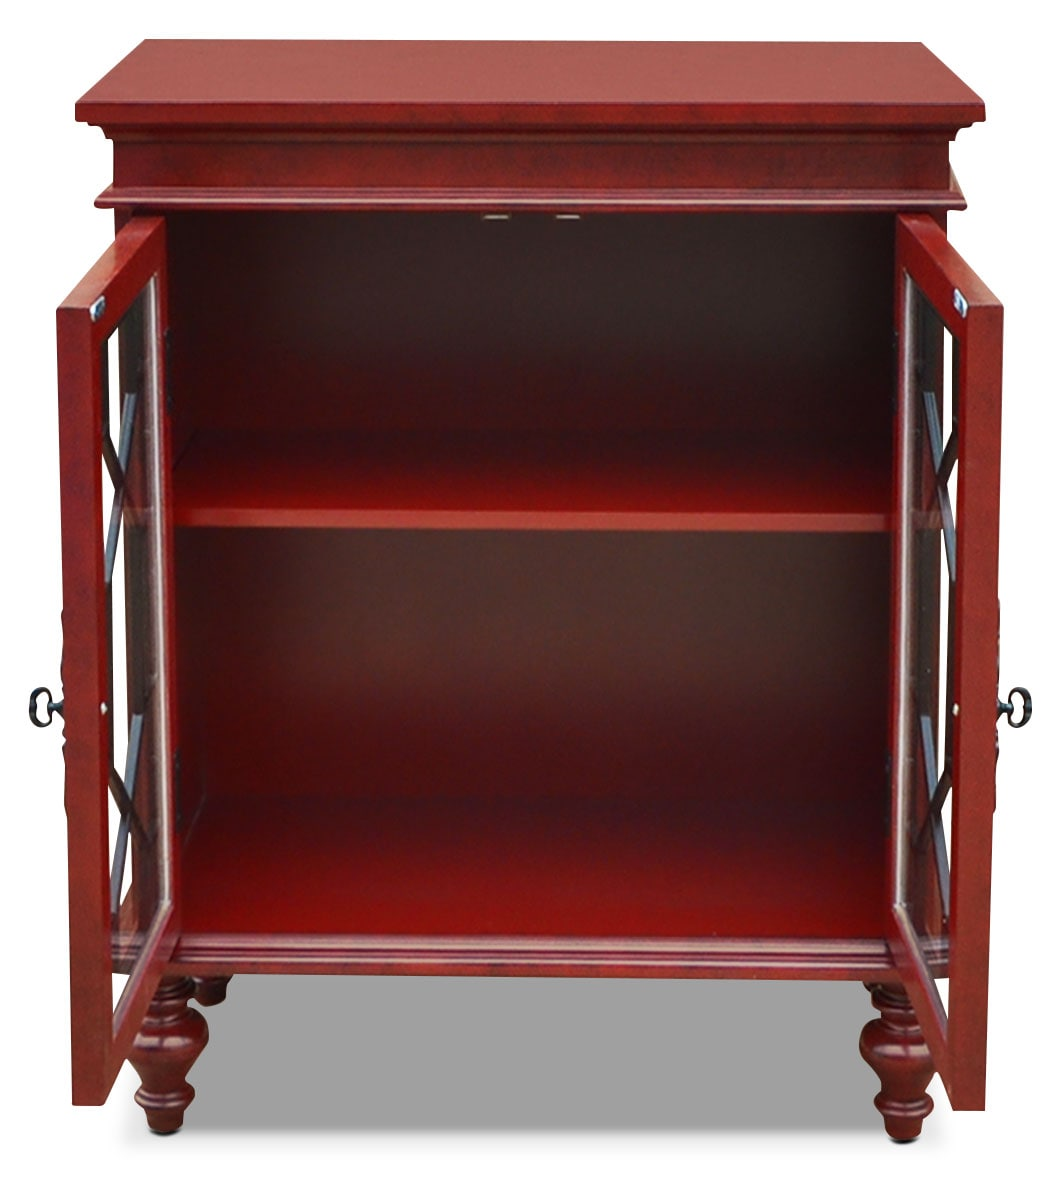 Small Accent Couch: Rigolet Small Accent Cabinet – Red